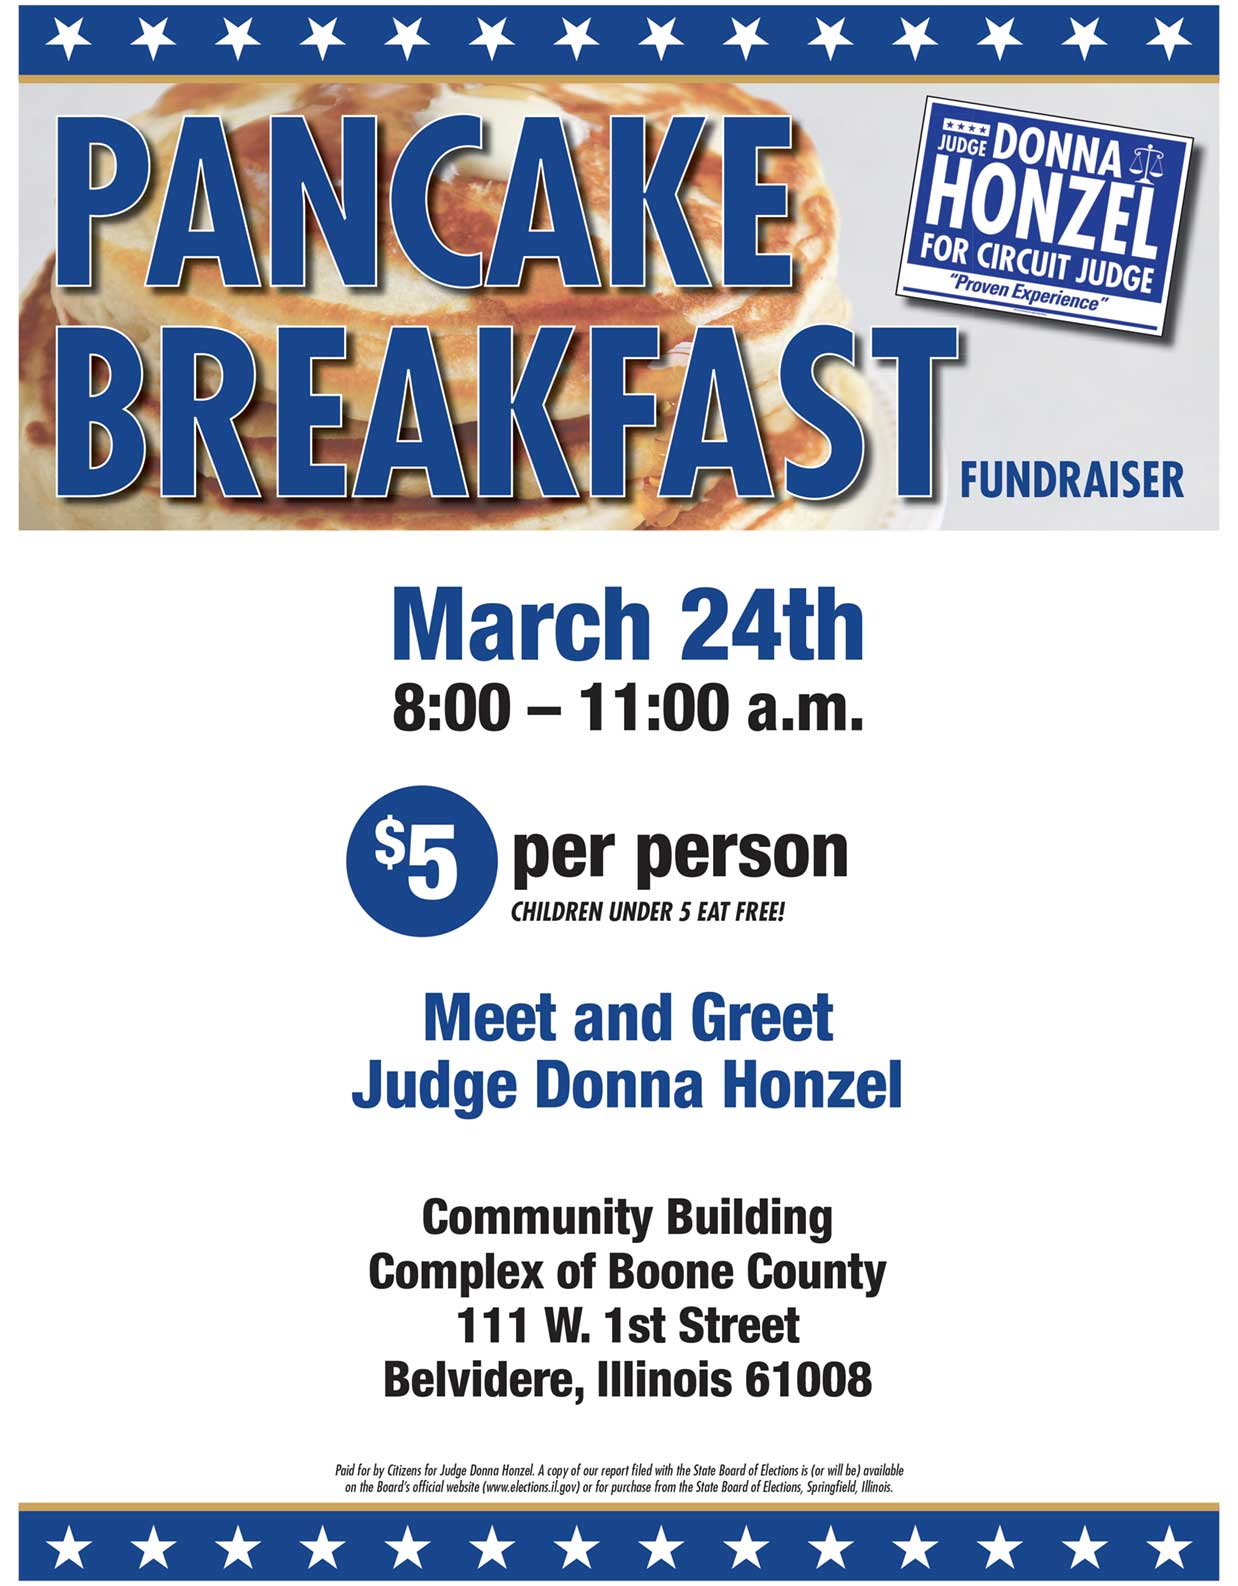 Pancake-Breakfast-Flyer-Home